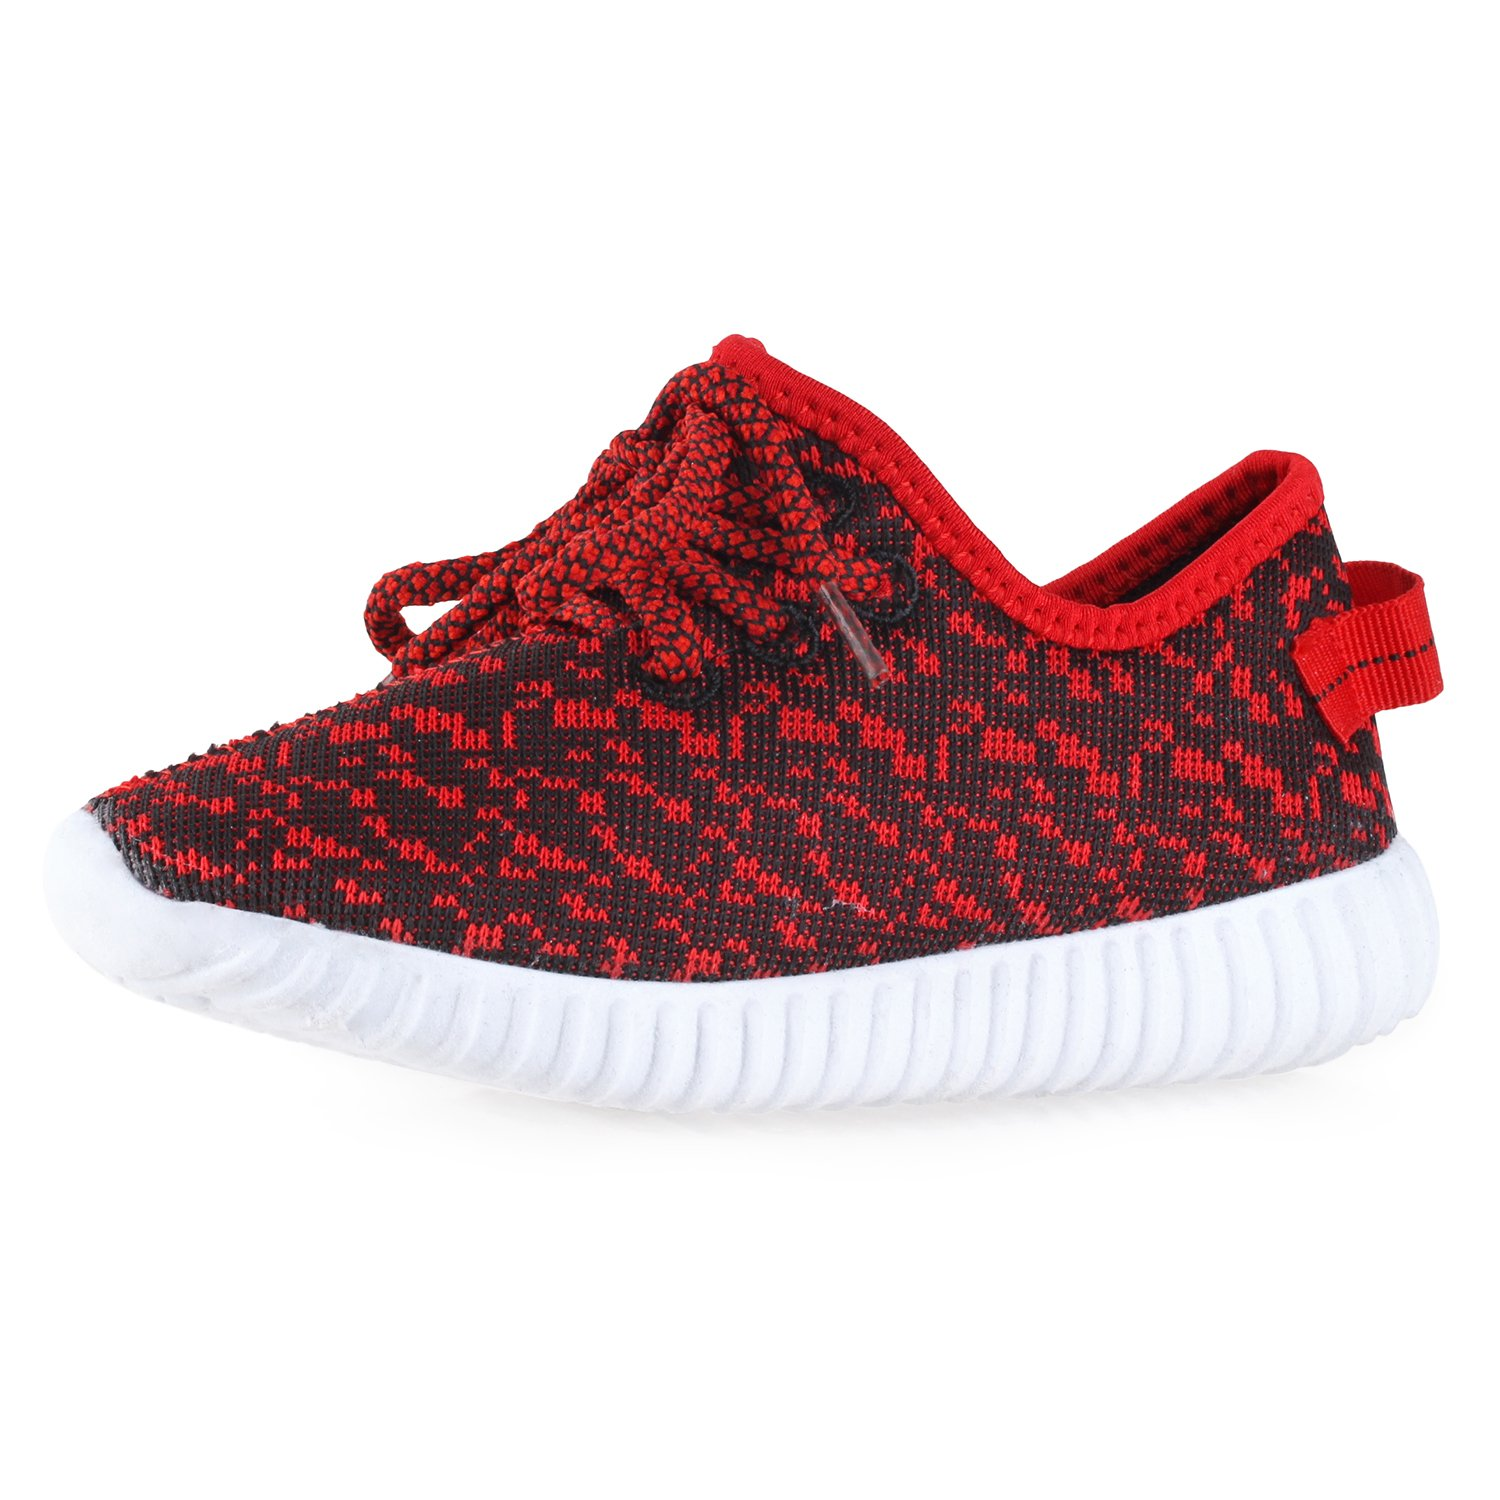 BLINX Girls Jogger Woven Knit Upper Casual Sneakers Shoes Black/Red 13